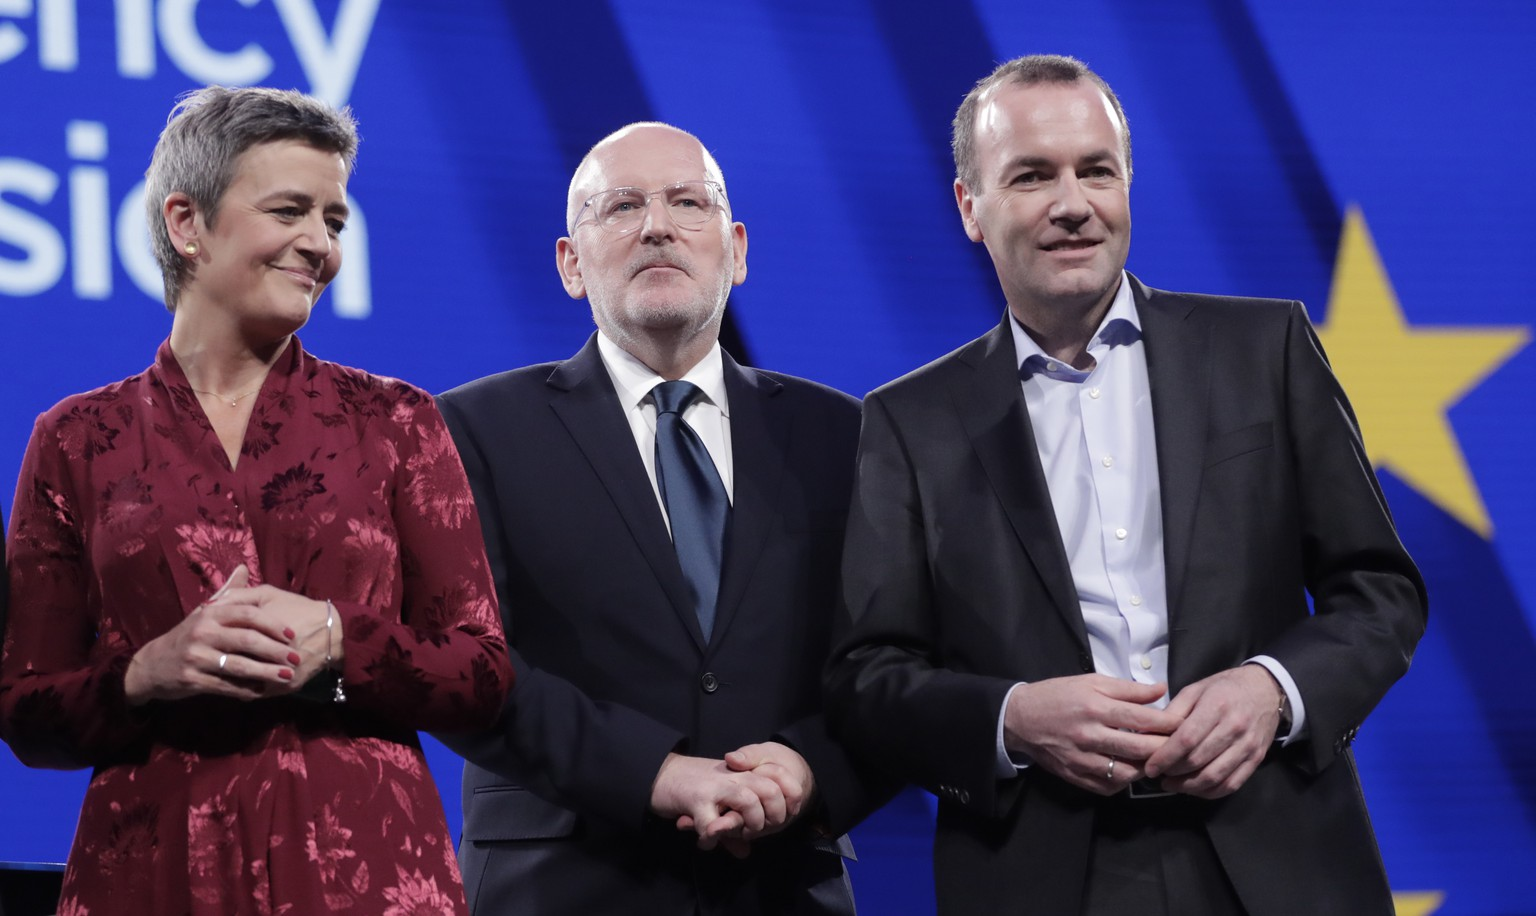 epa07573504 (L-R) Danish Margrethe Vestager of the Alliance of Liberals and Democrats for Europe (ALDE), Dutch Frans Timmermans of the Party of European Socialists (PES), German Manfred Weber of European People's Party (EPP), all candidates for the next president of the European Commission, pose ahead of the Eurovision presidential debate at European parliament in Brussels, Belgium, 15 May 2019. The 2019 Eurovision Presidential Debate will be broadcast live at 21:00 CEST.  EPA/OLIVIER HOSLET